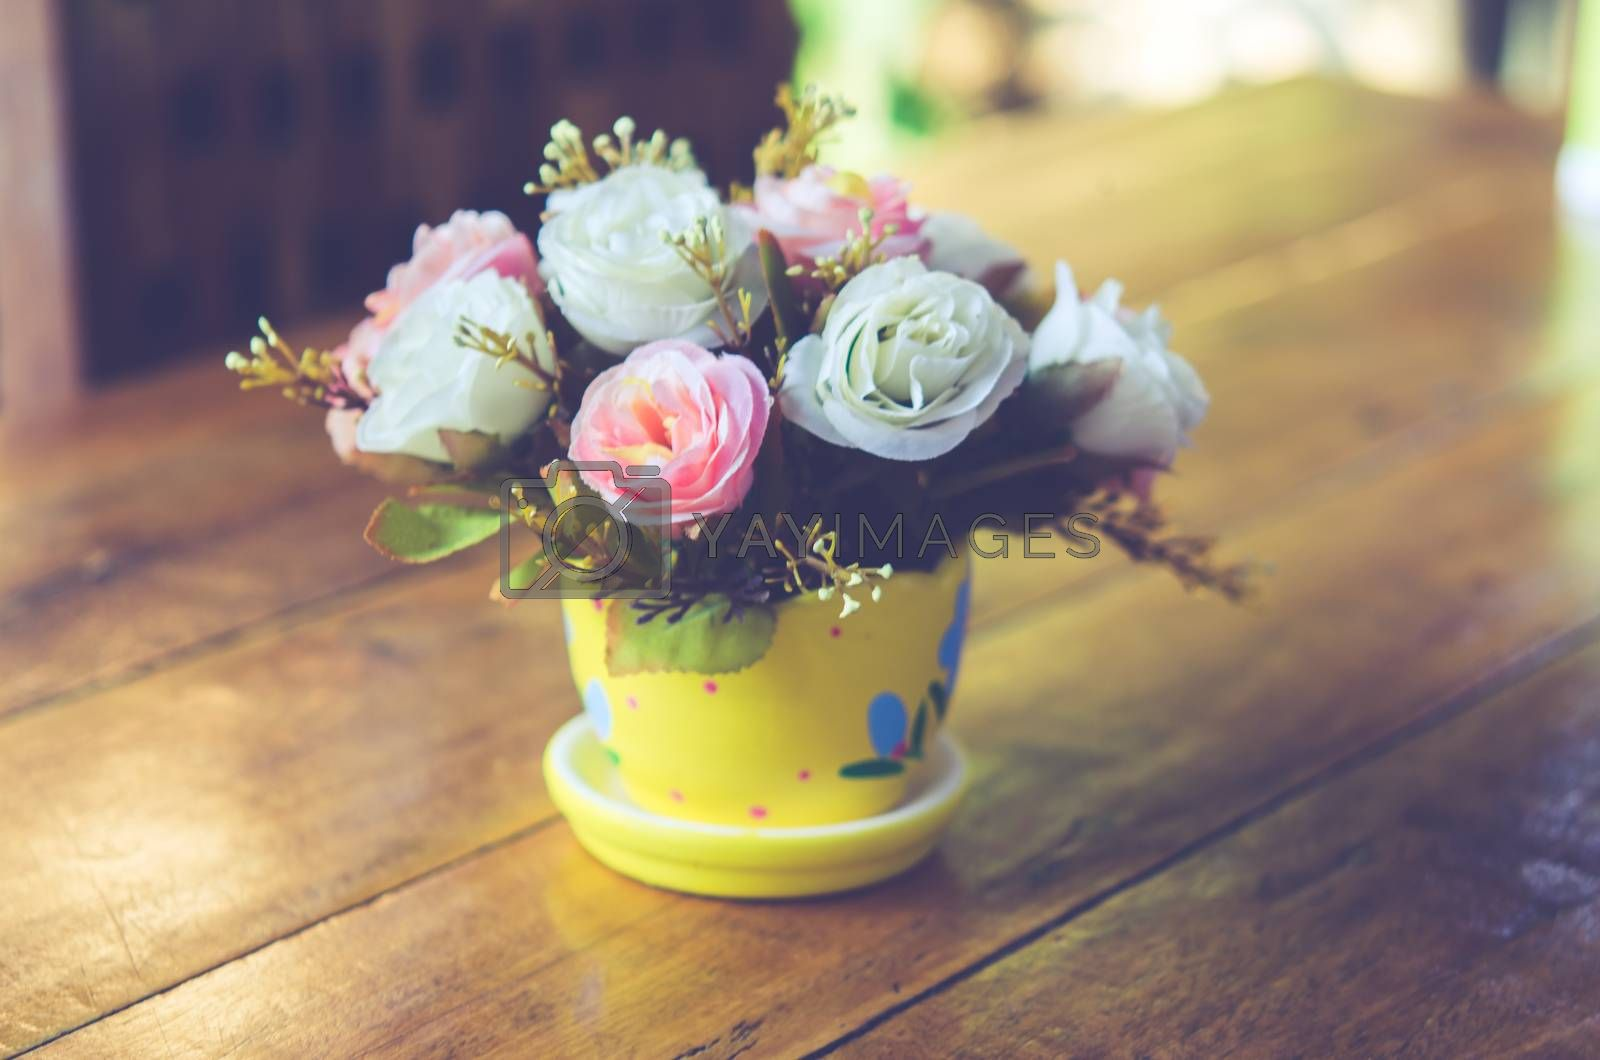 flowers on the table.vintage color tone